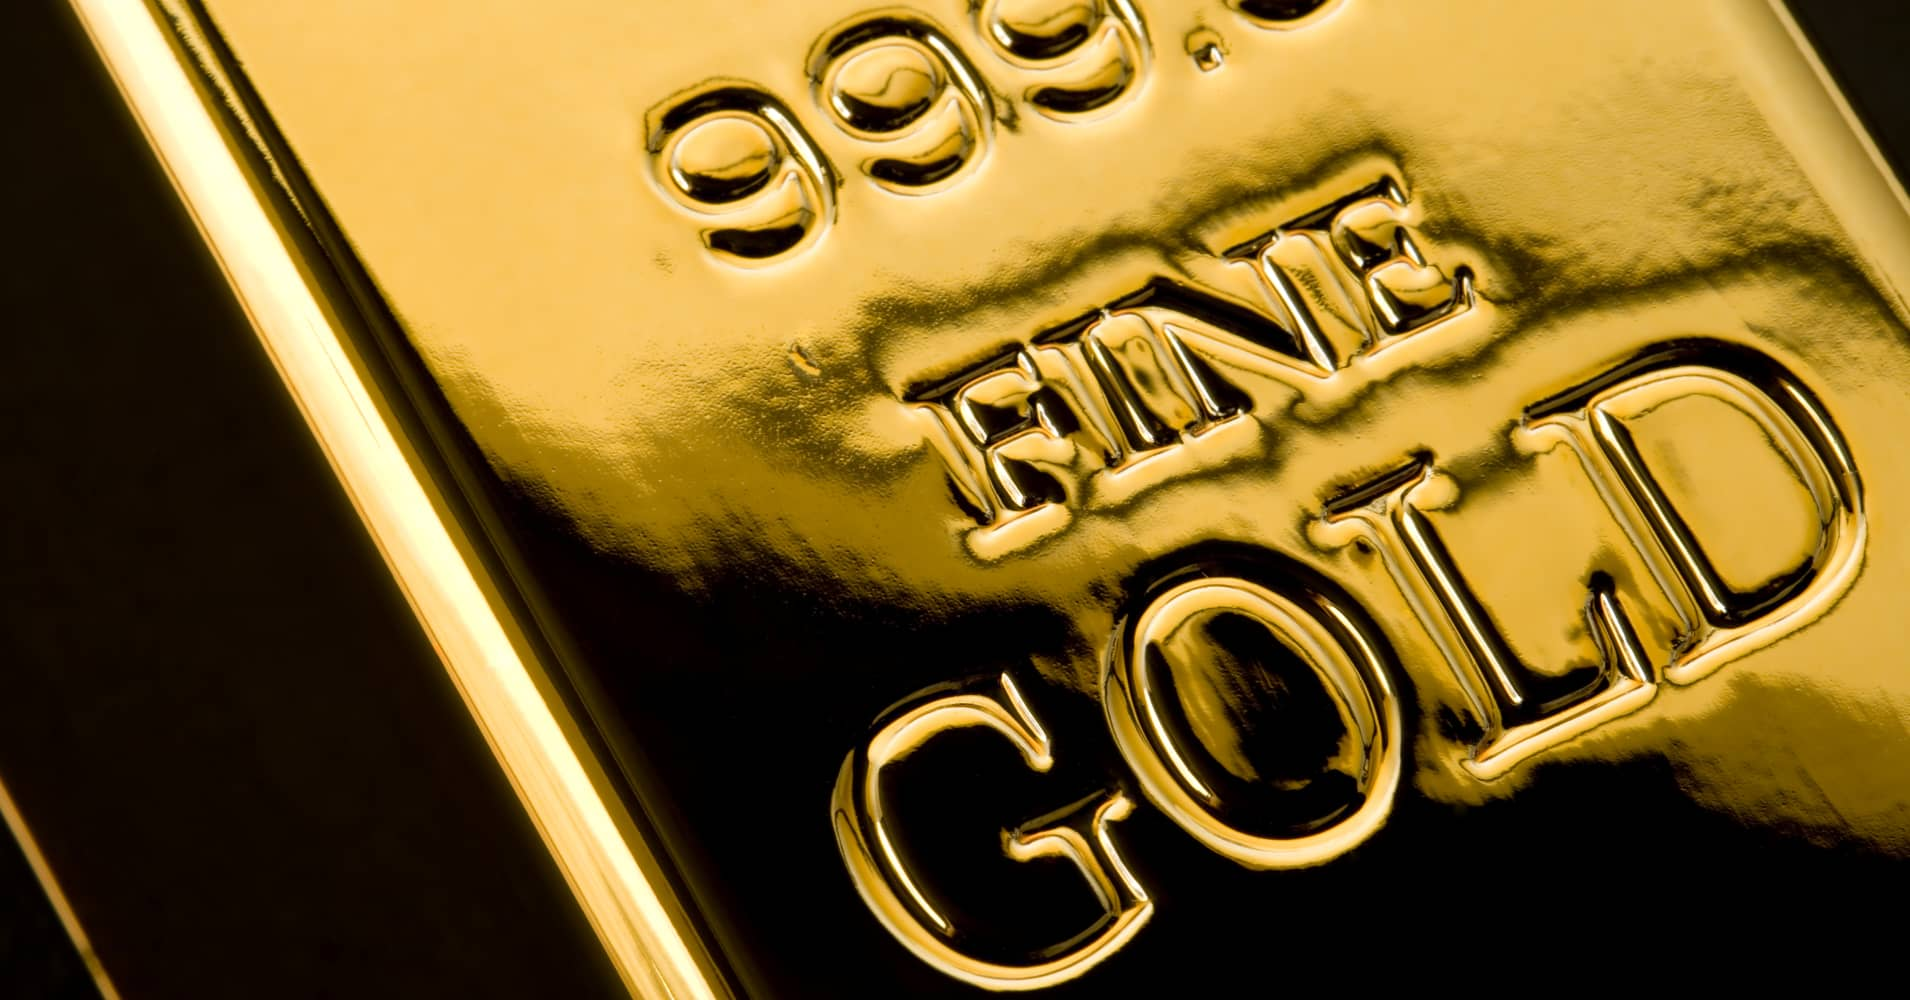 Http Www Cnbc Com 2014 01 14 Gold May Rise To 1280 In Post Payrolls Bounce Html